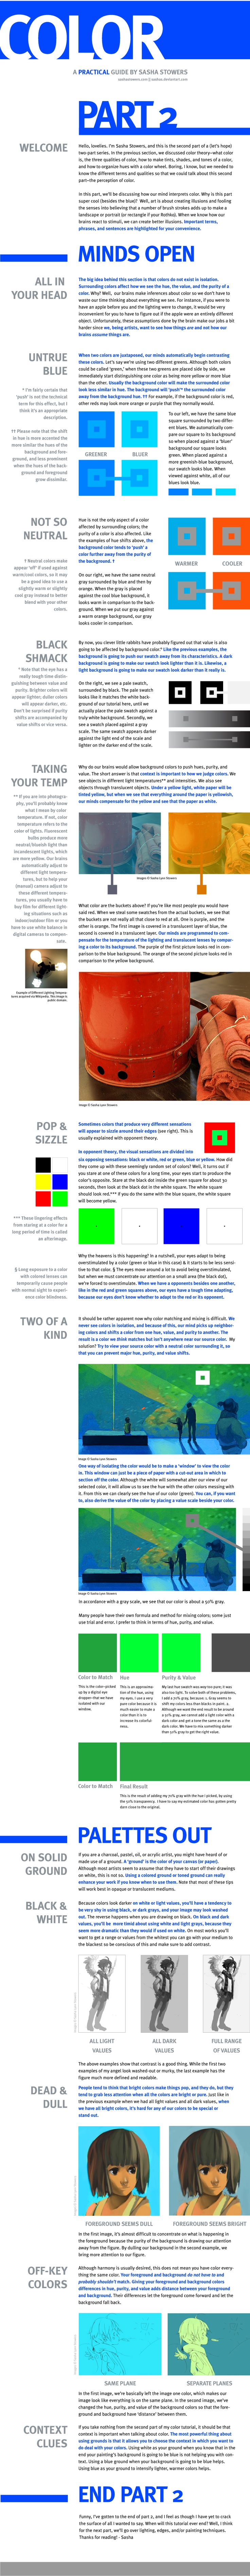 The color tutorial part 2 by sashas on deviantart